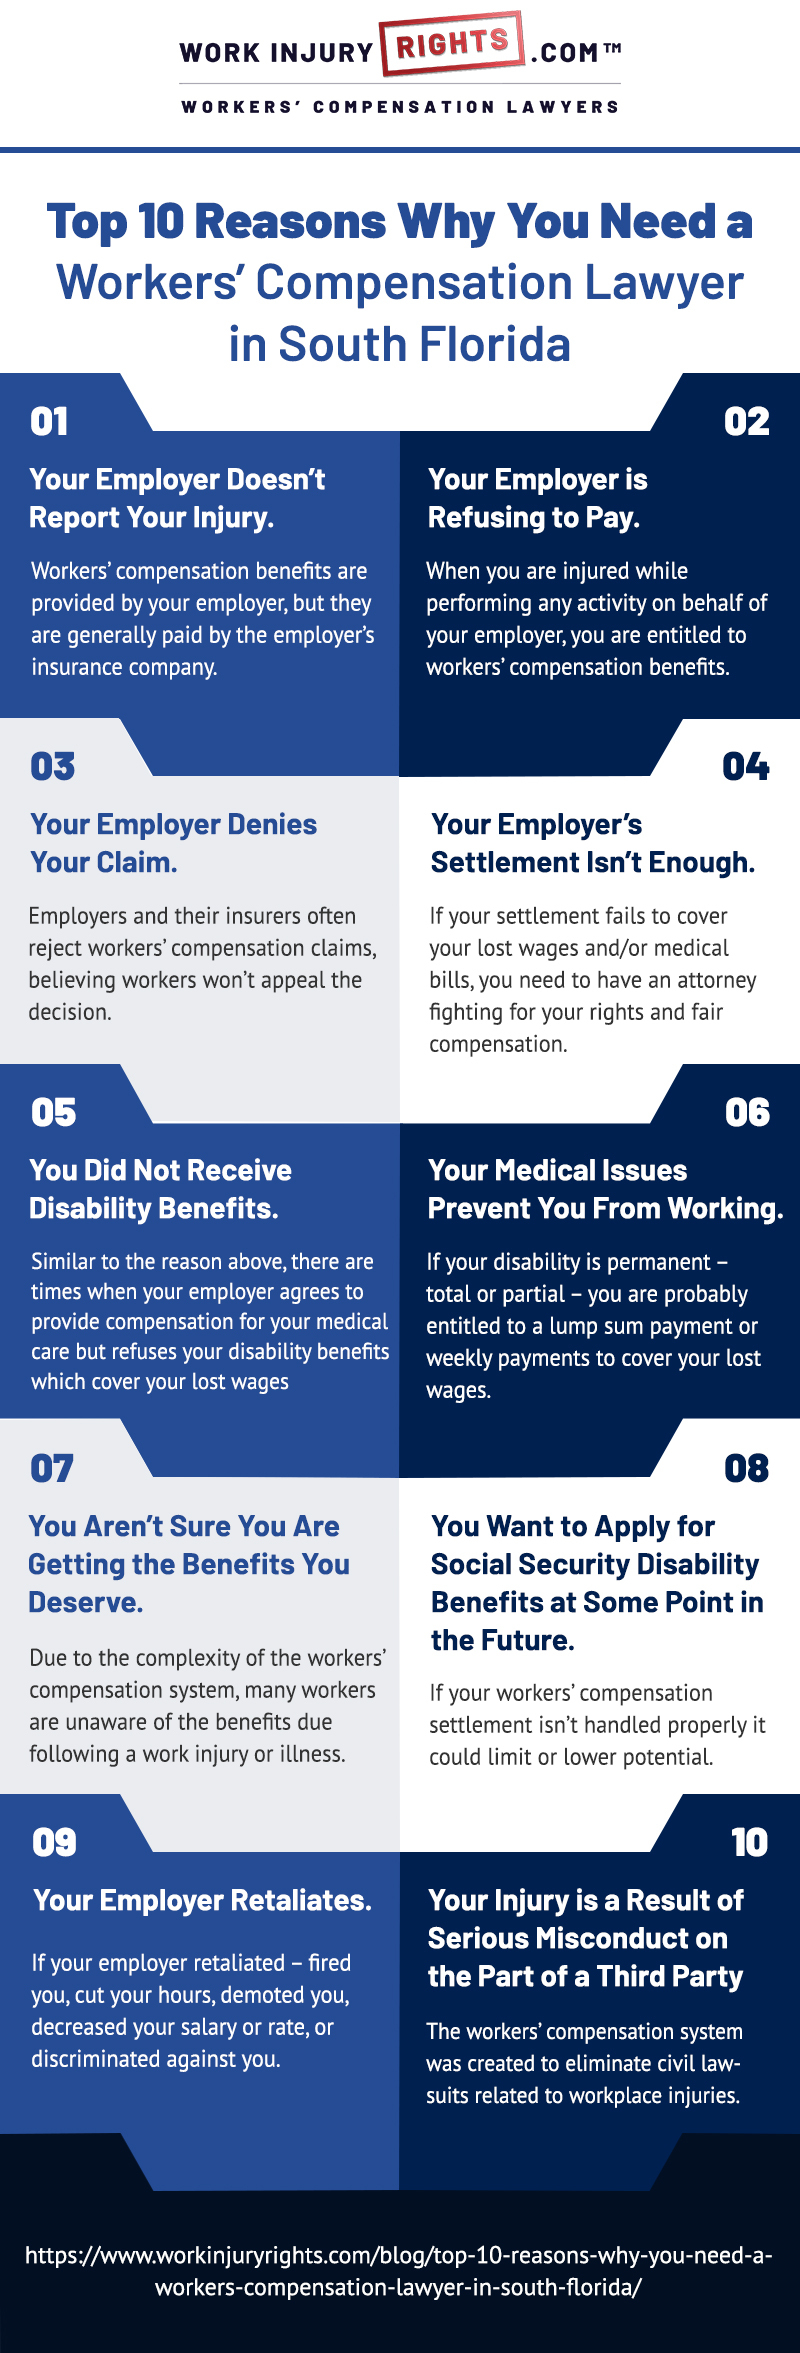 why you need a Workers' compensation lawyer infographic